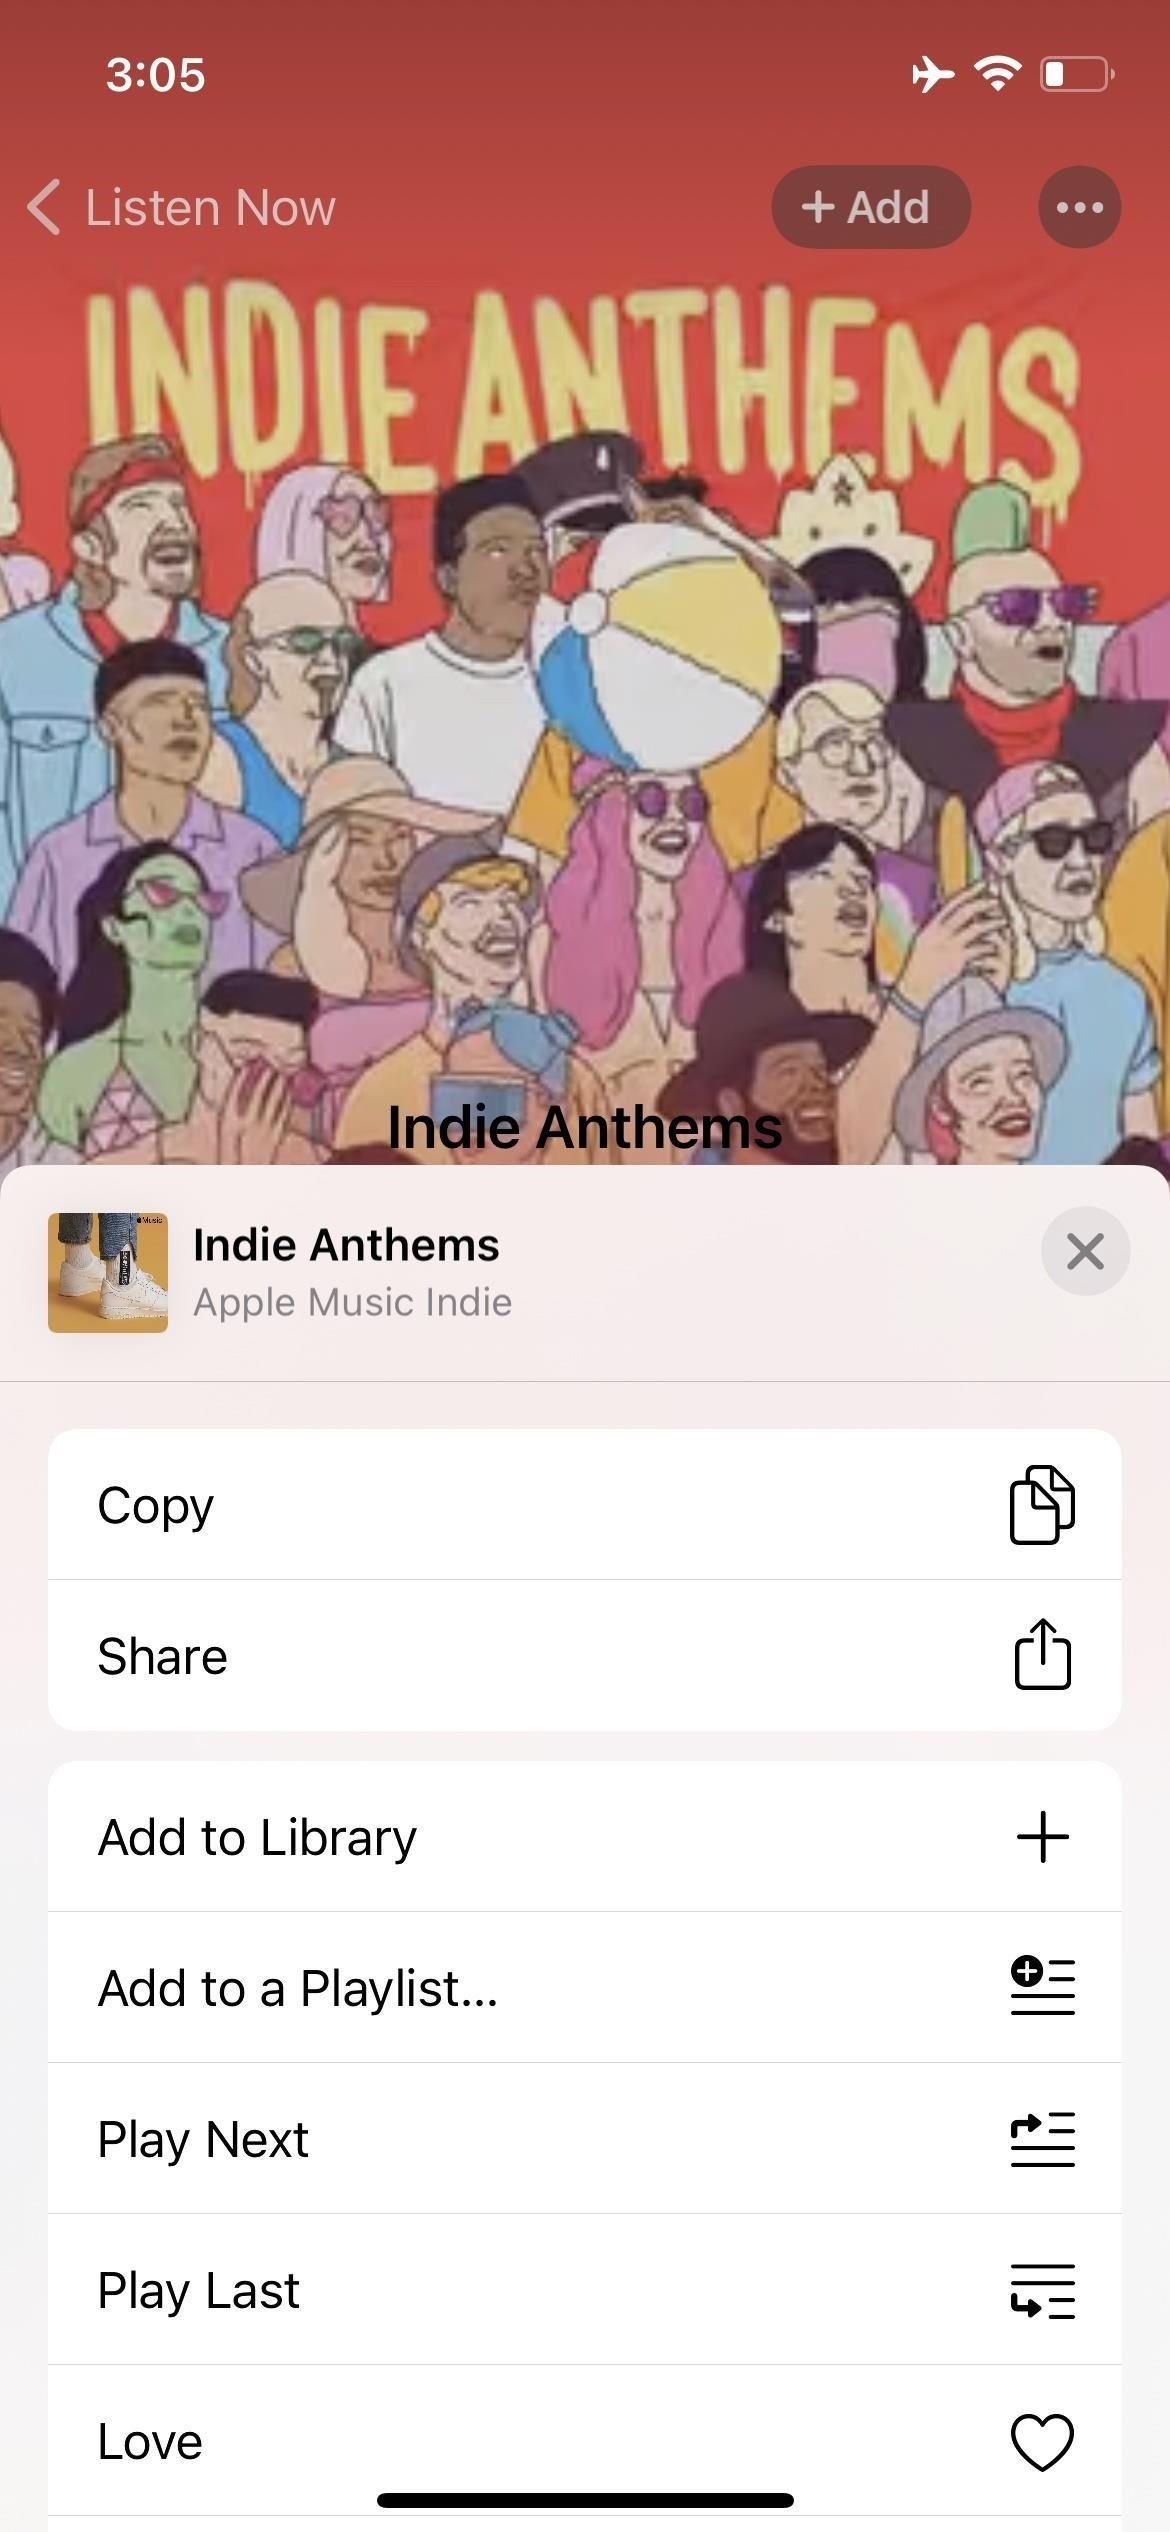 7 Cool Features iOS 14.5 Adds to Your iPhone's Music App